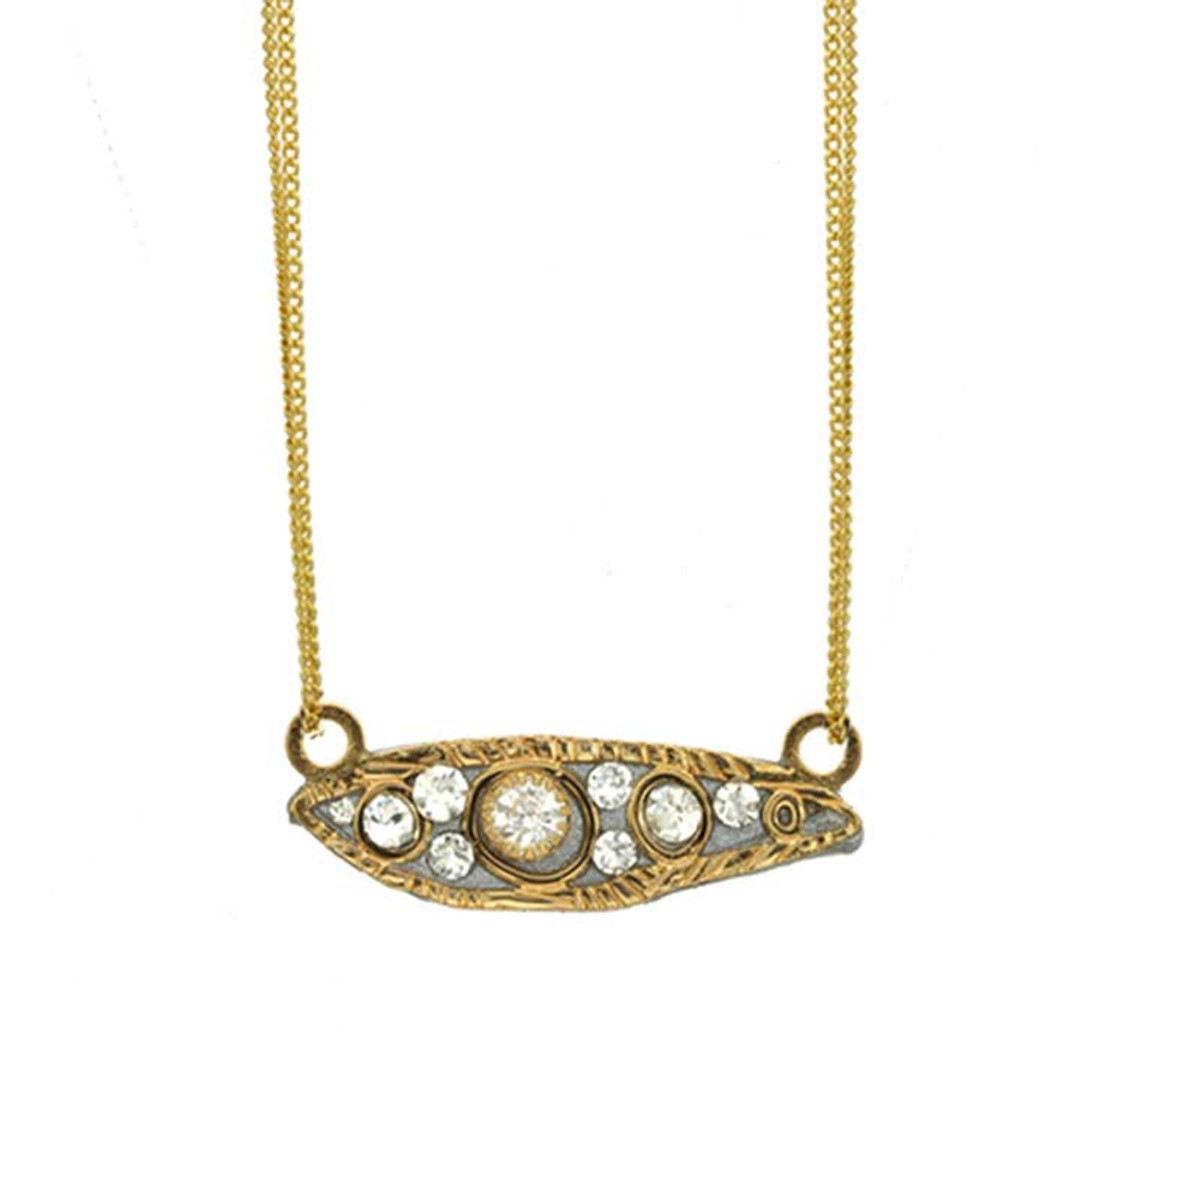 Icicle necklaces by Michal Golan Jewelry